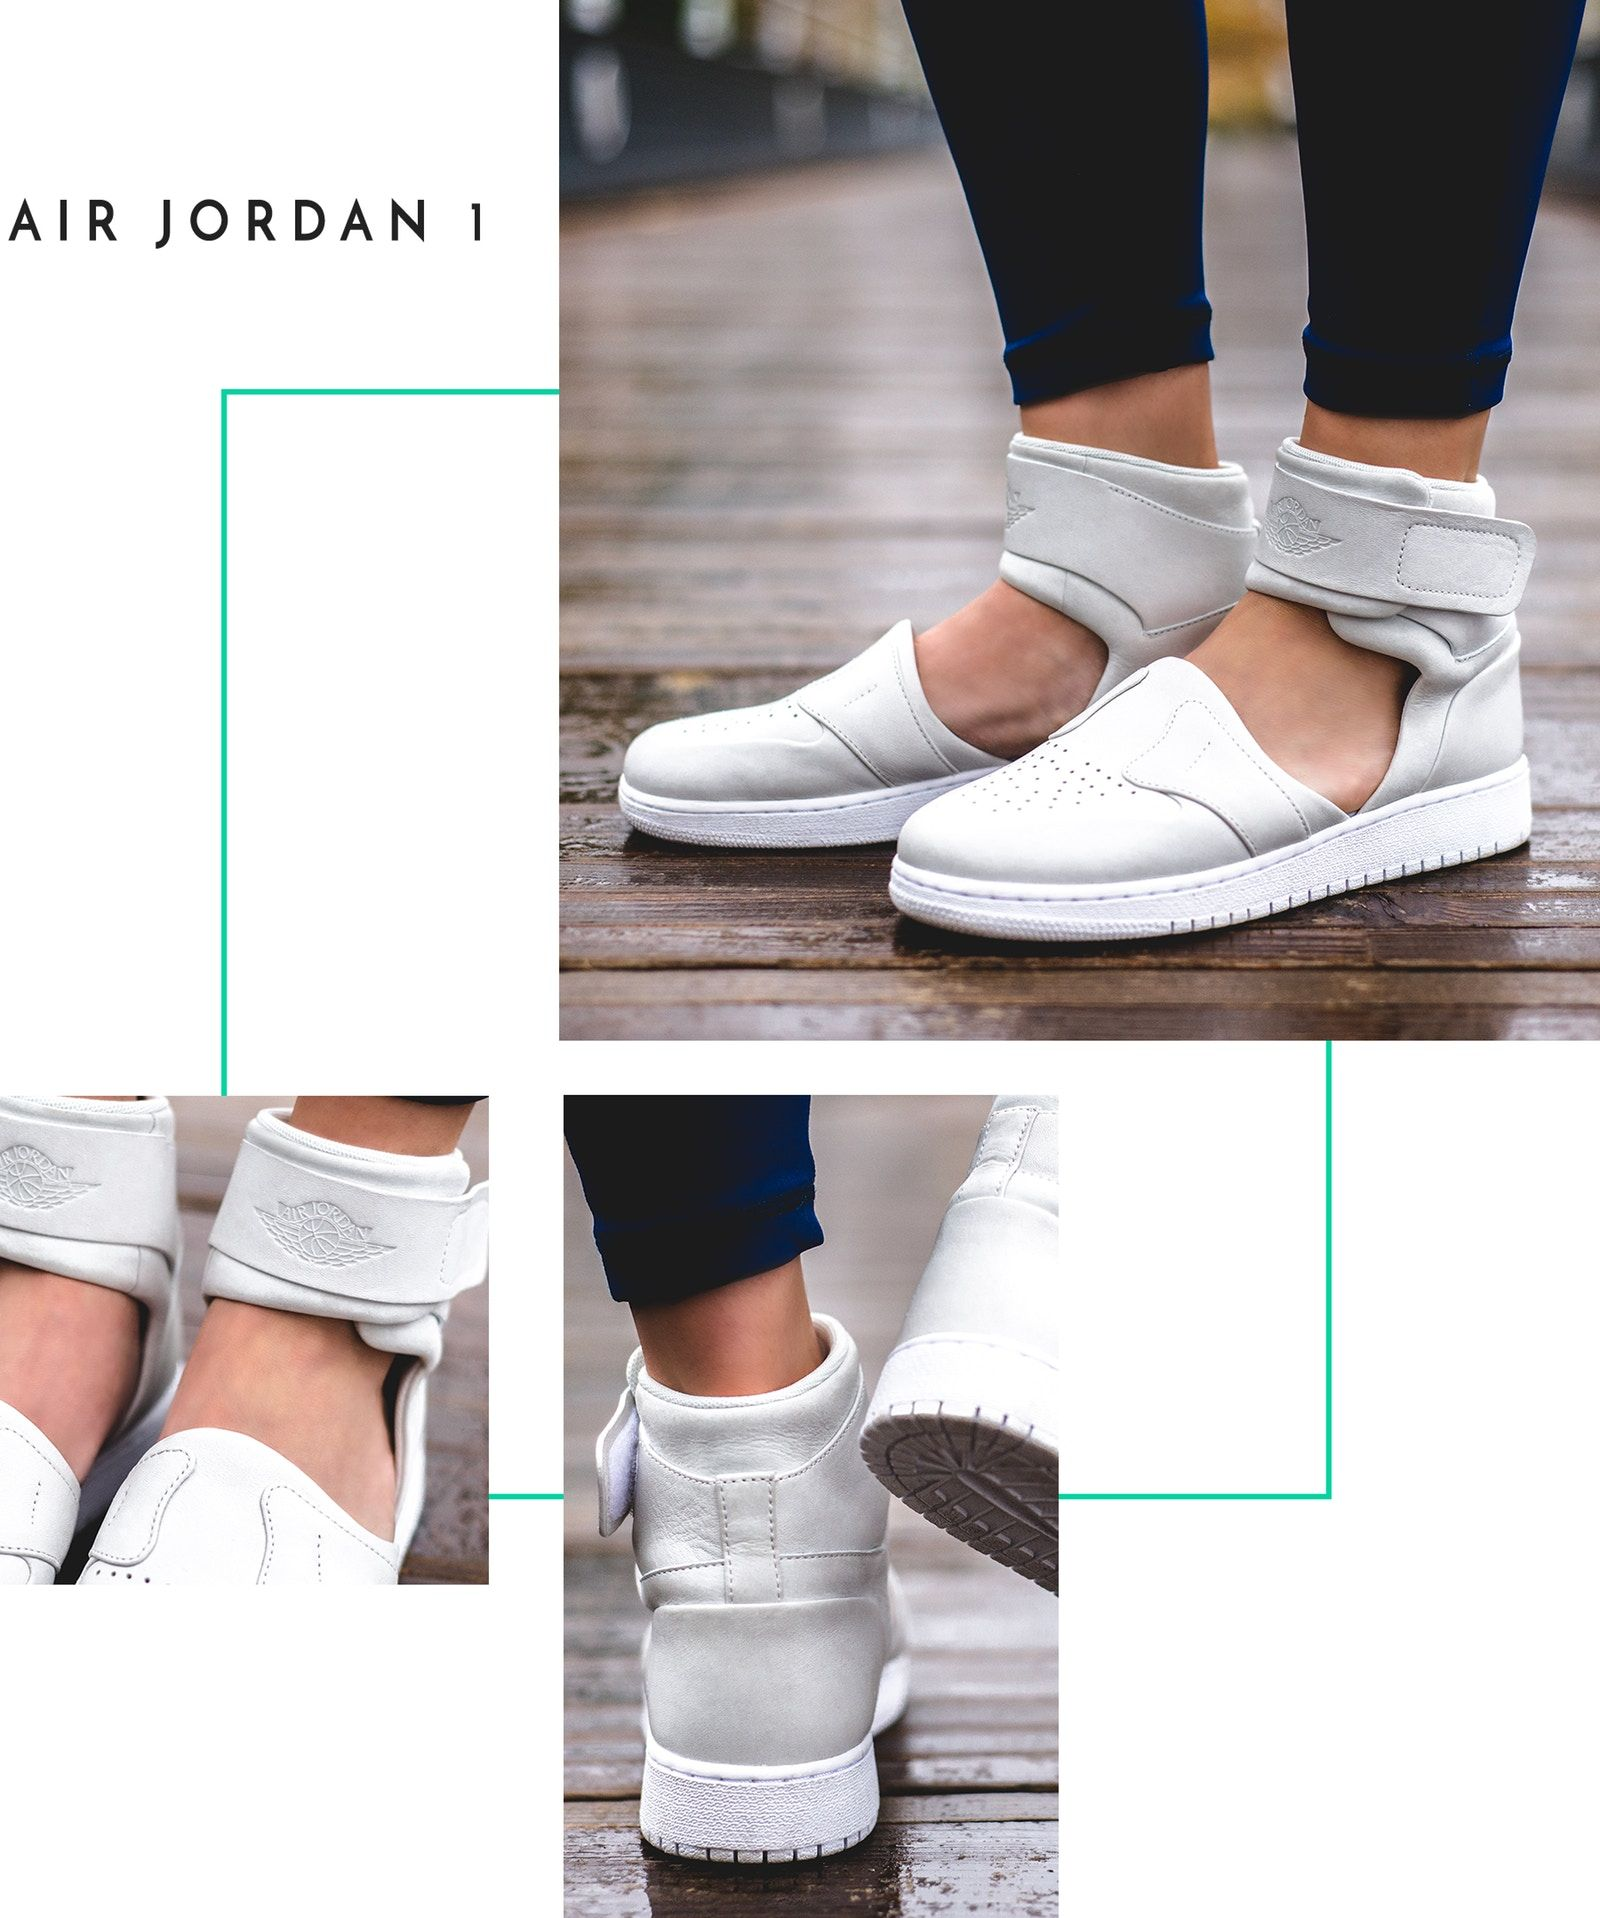 4d3812c5bdf2 Nike The 1 Reimagined Lover XX Air Force 1 Jordan Jumpman Women Female  Design Collective Release Date Where to Buy Closer On Feet Look White Mule  Sandal ...